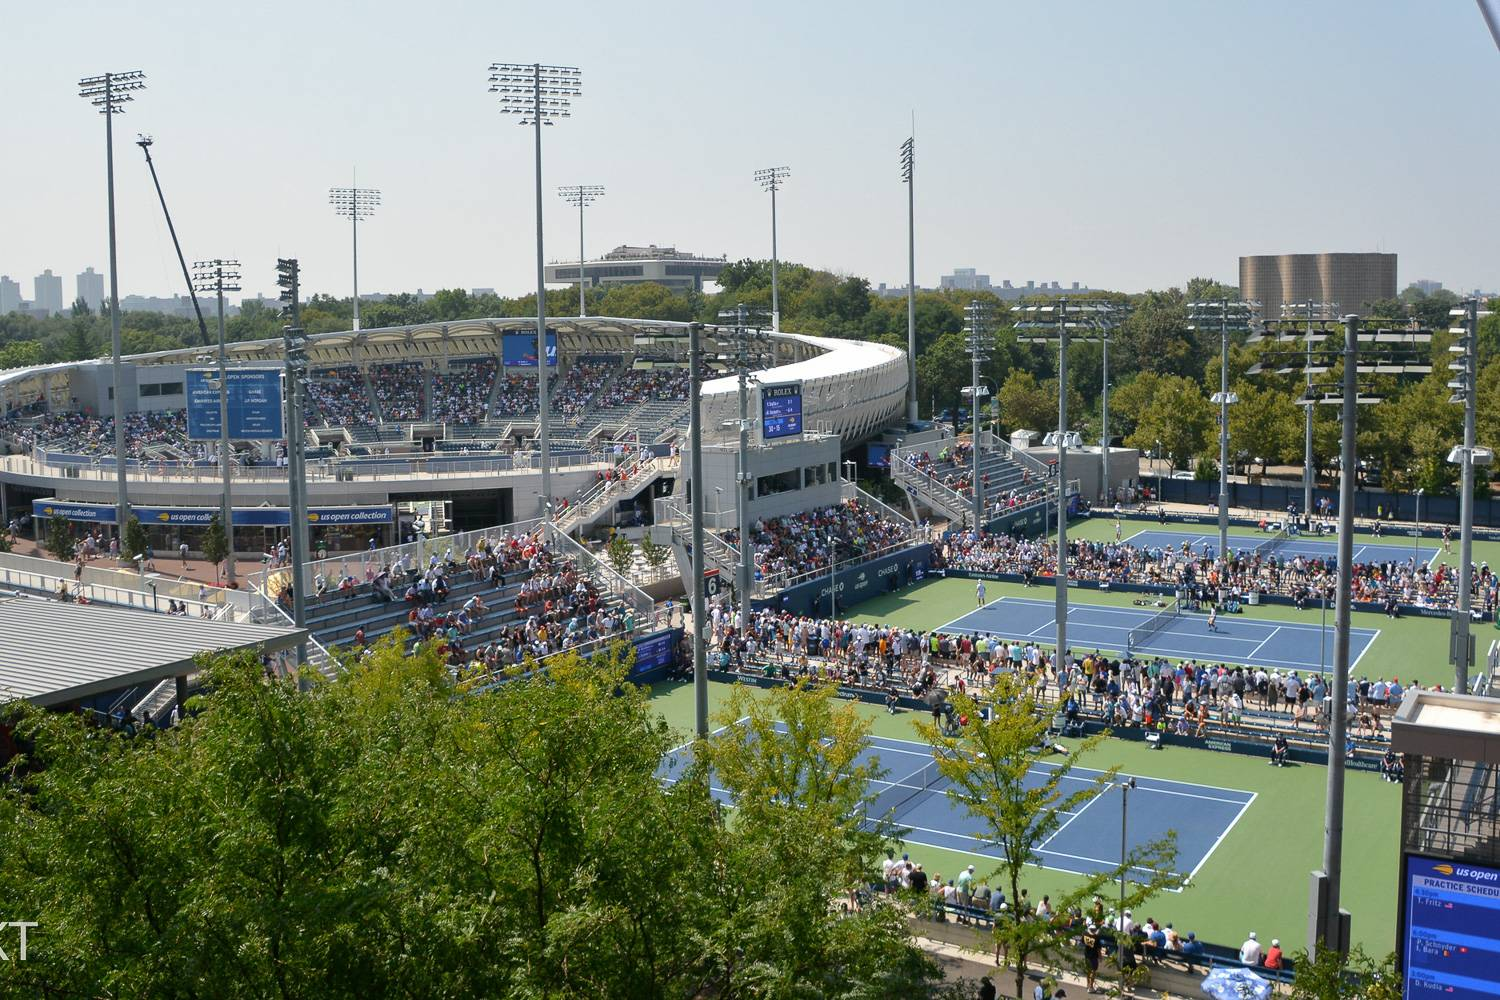 Image of Arthur Ashe Stadium and three tennis courts in Flushing Meadows – Corona Parks.